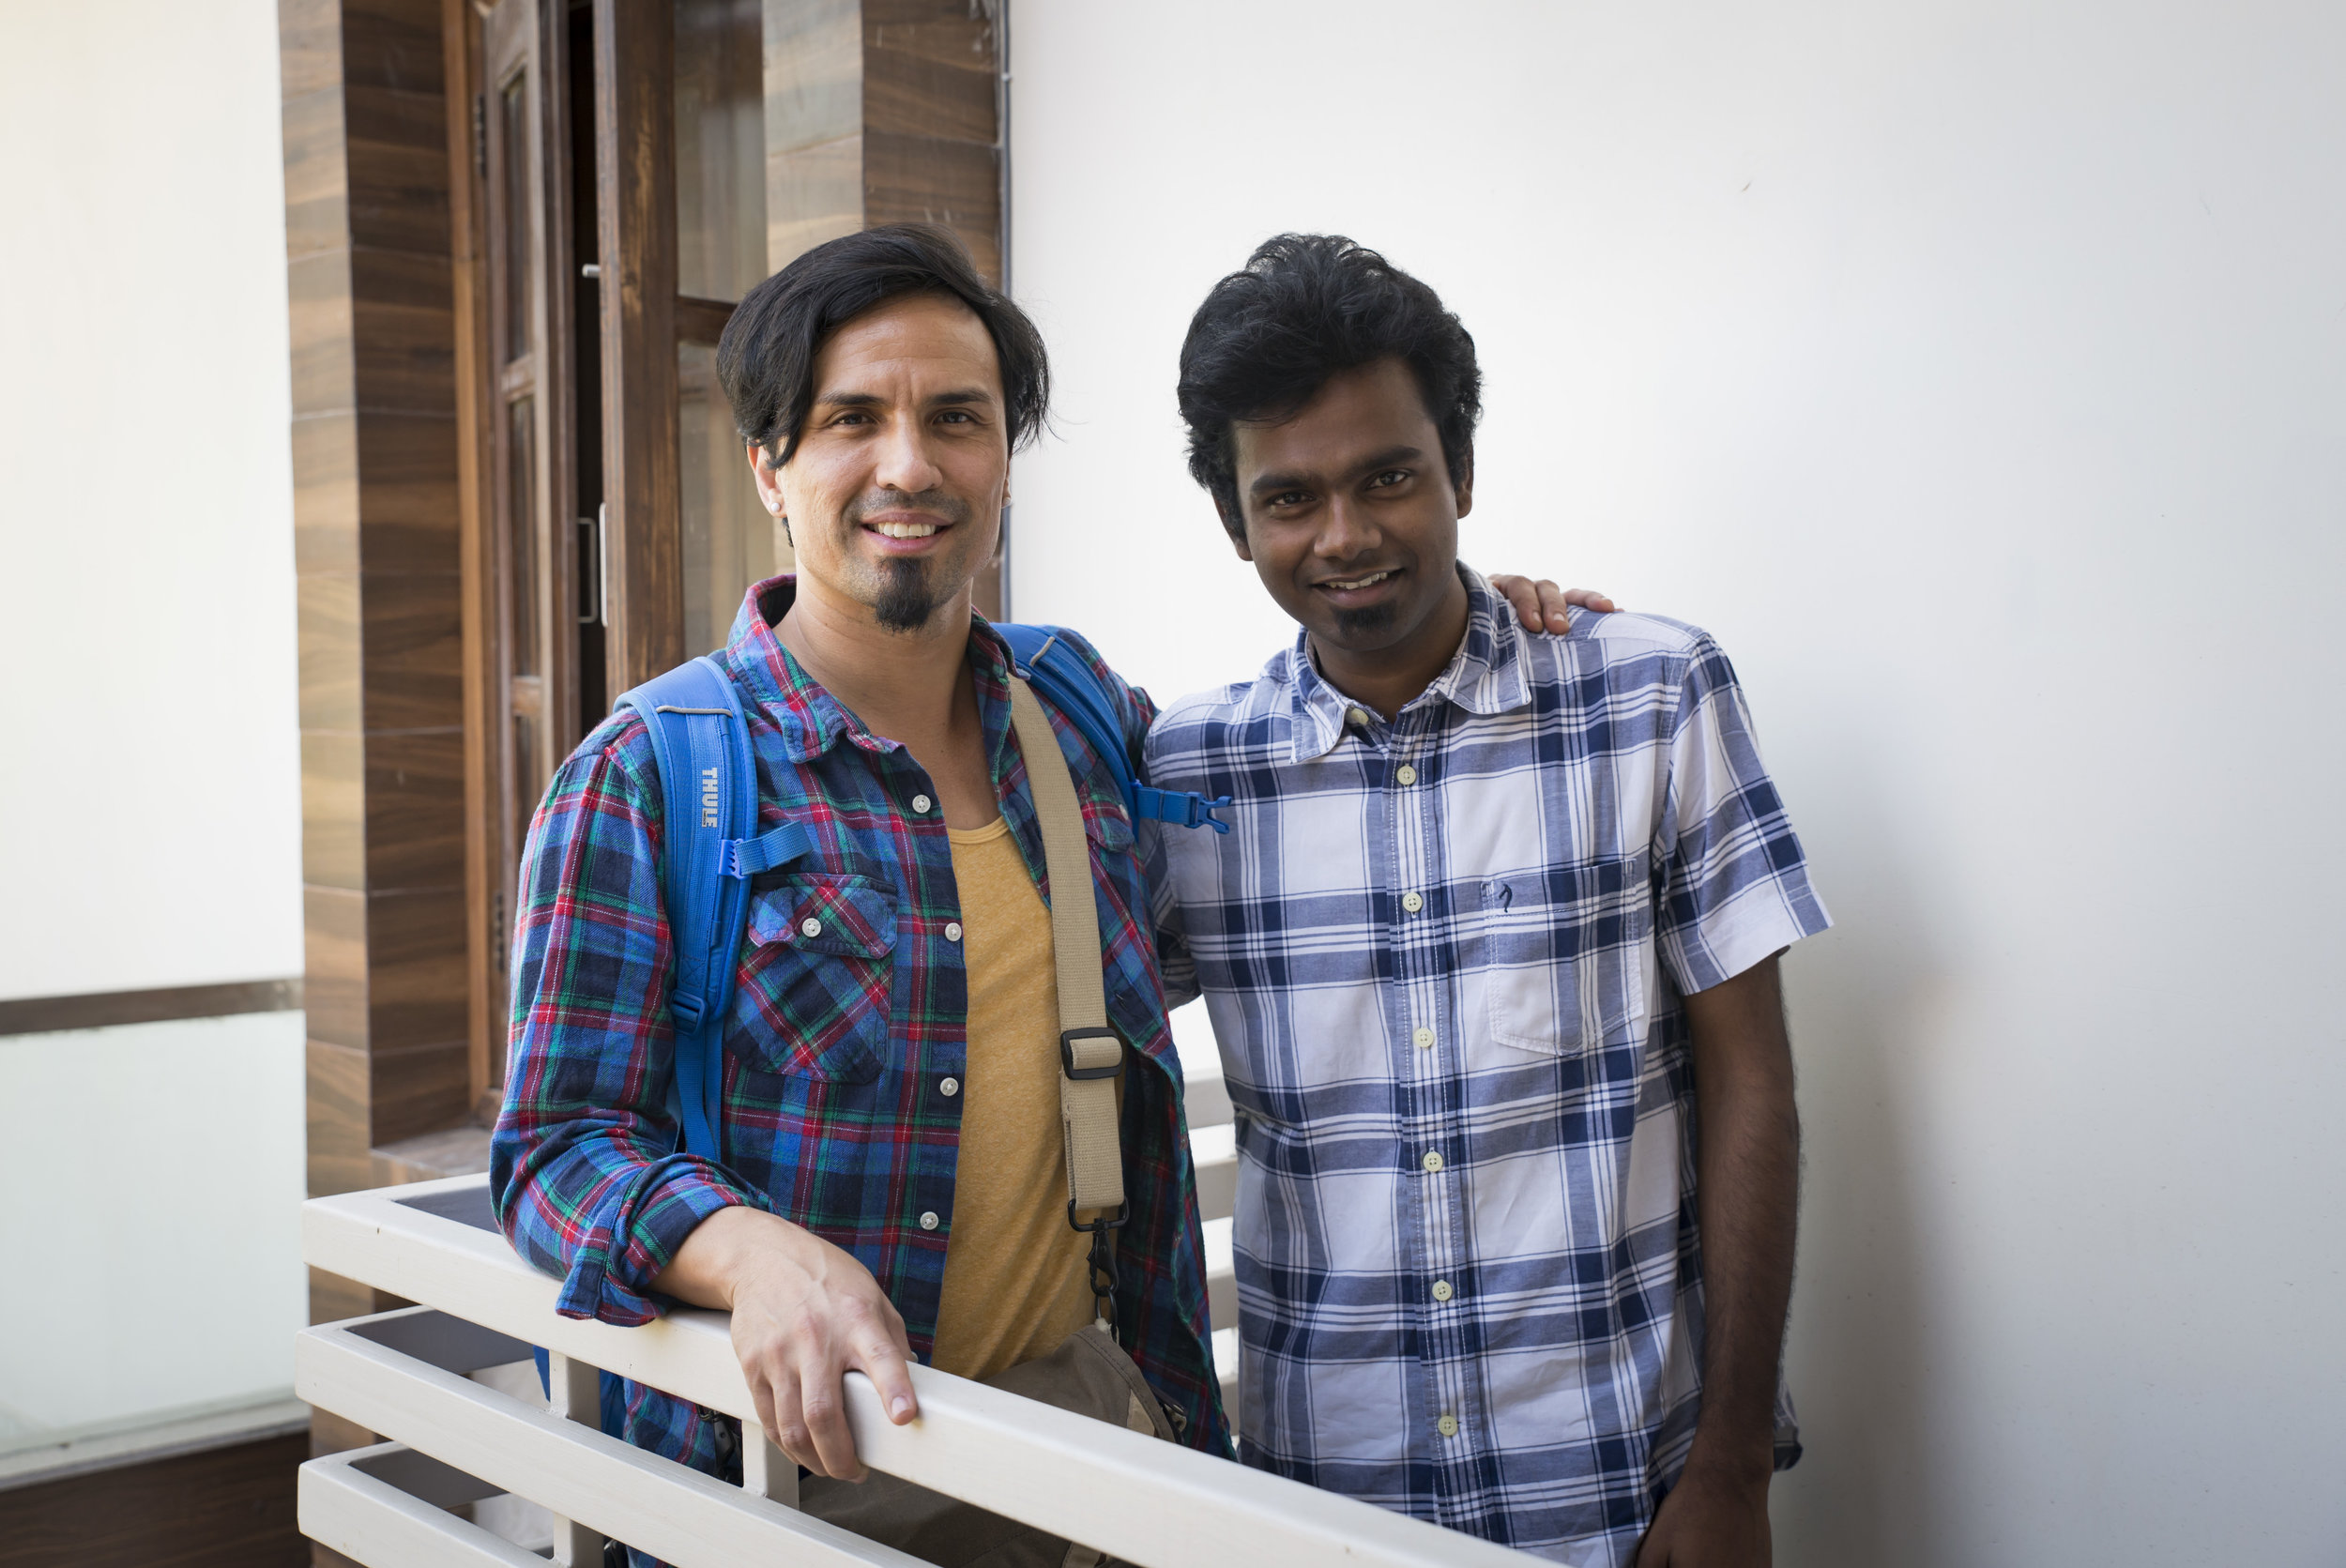 Manohar with Gregg Garner, who teaches the Biblical Foundations course. Manohar has been blessed by the time he has gotten with our India team to not only teach but demonstrate God's Word.